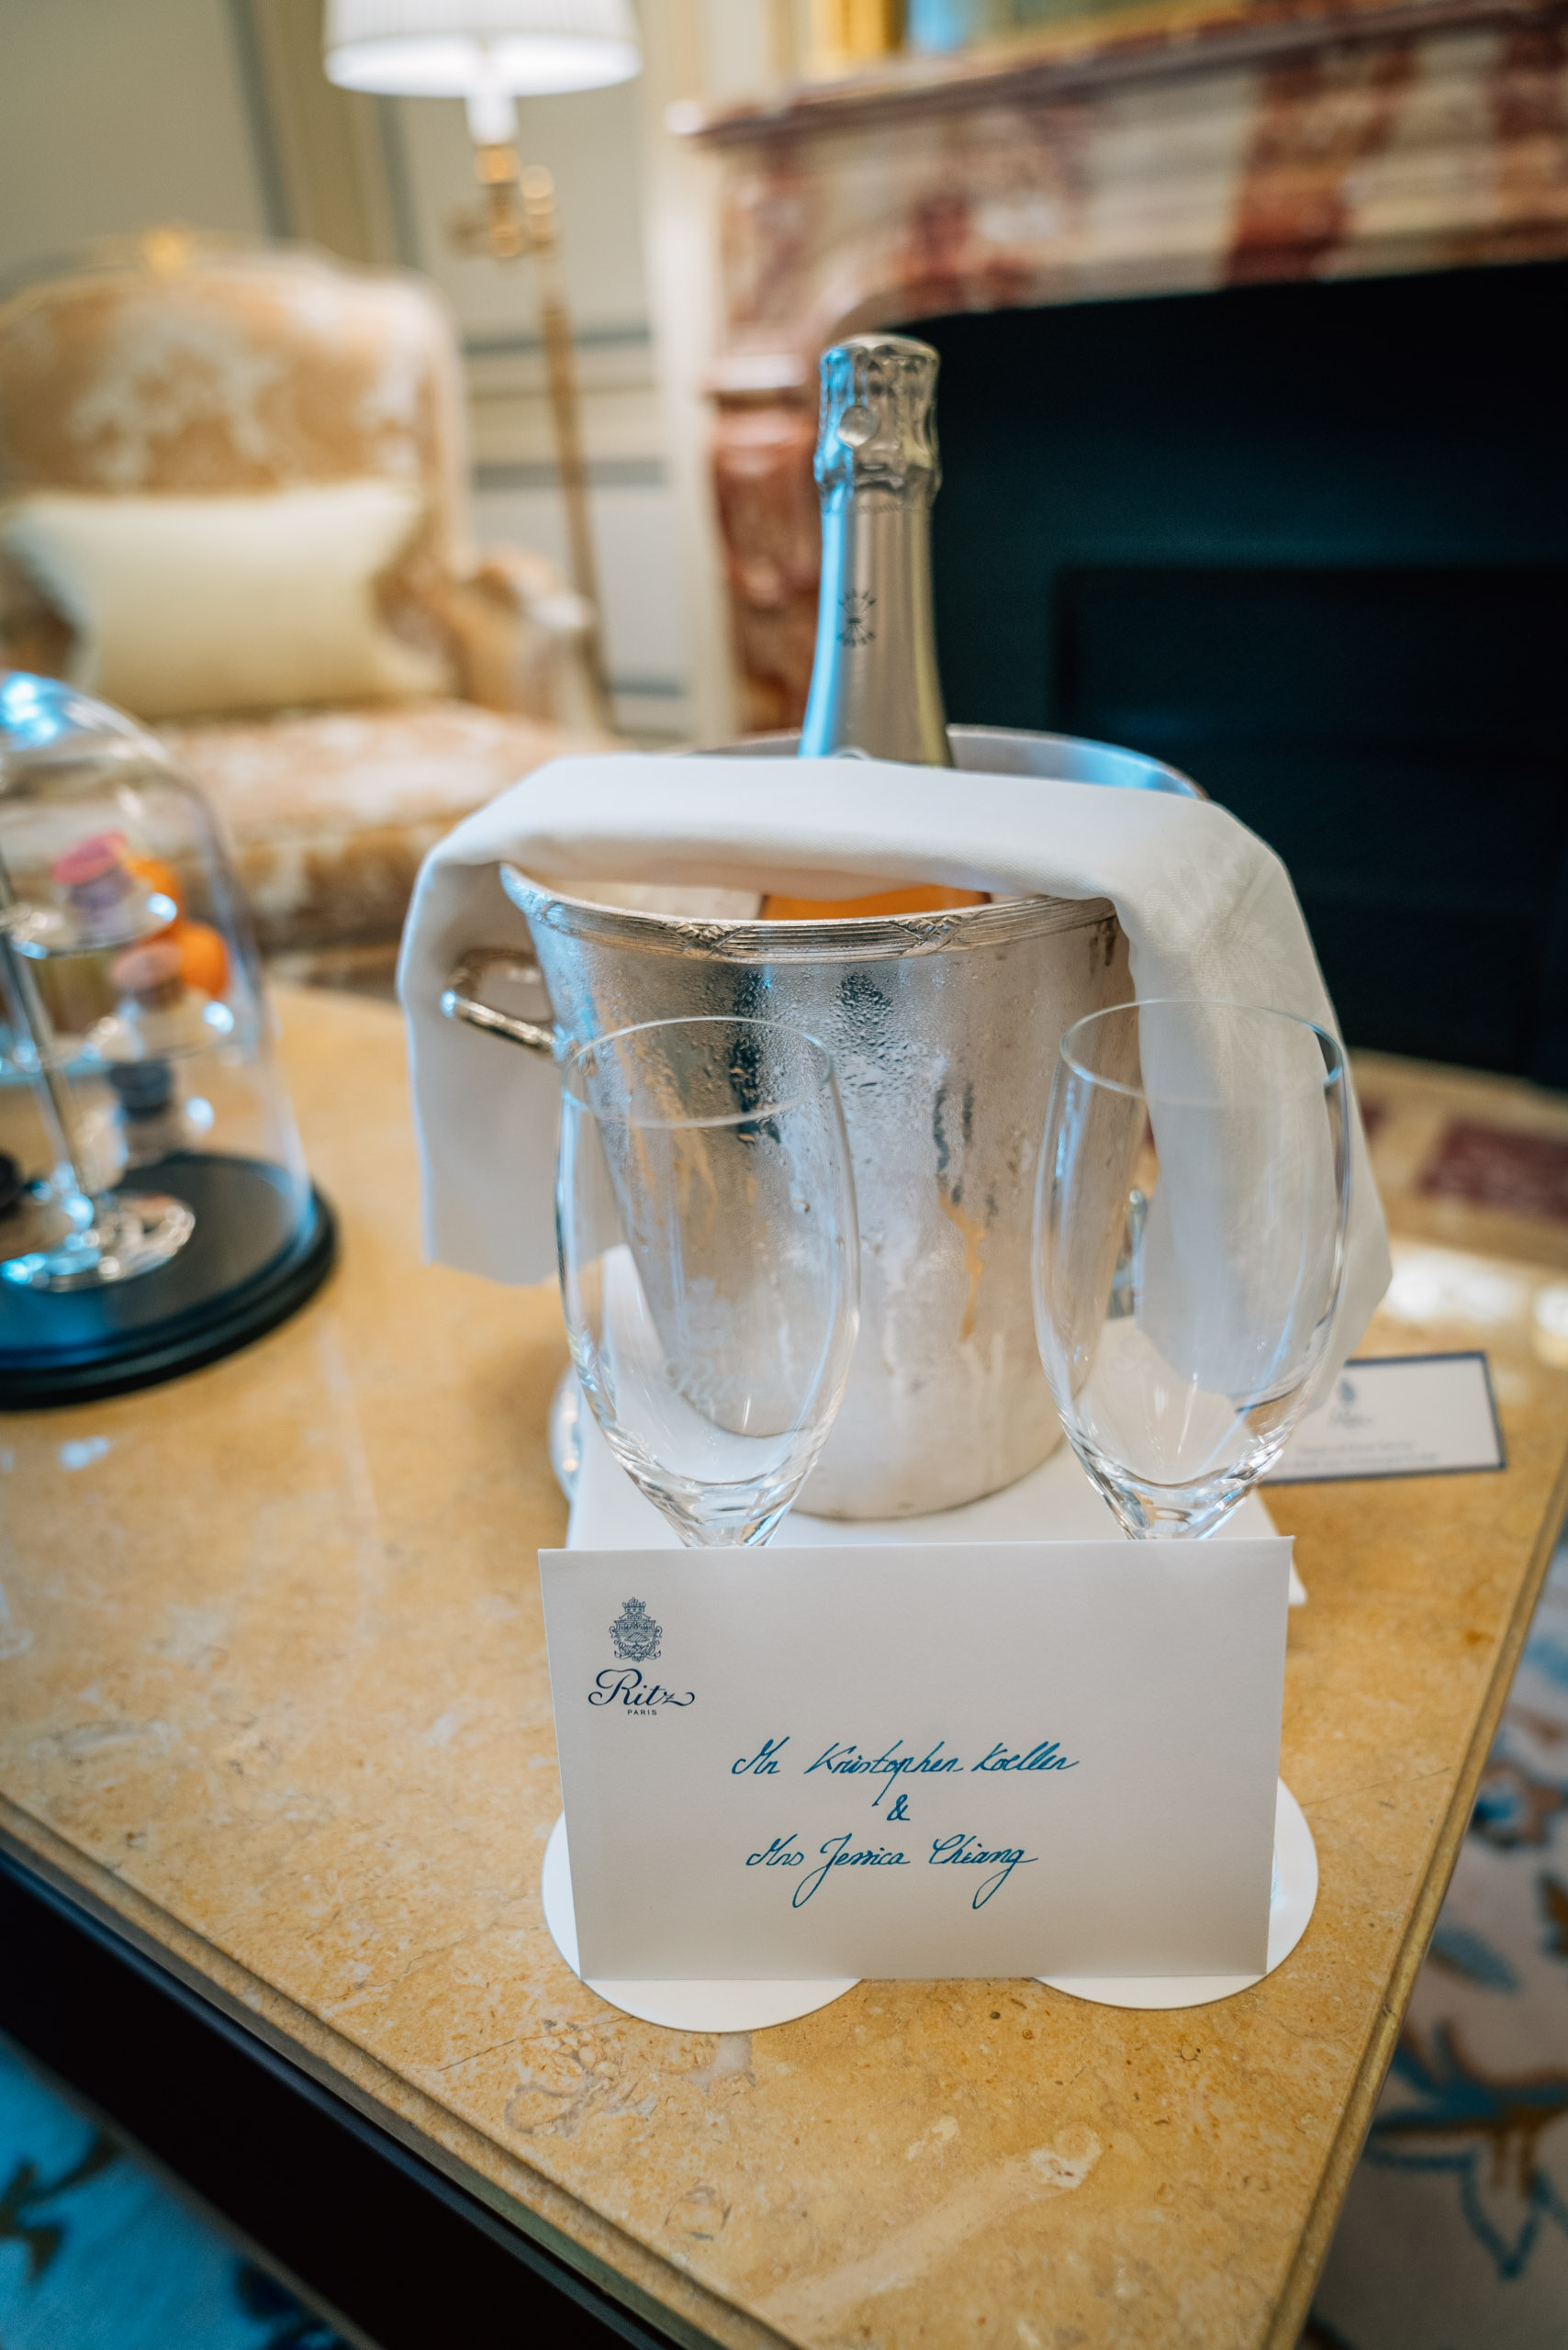 An Engagement Gift from the Ritz Paris